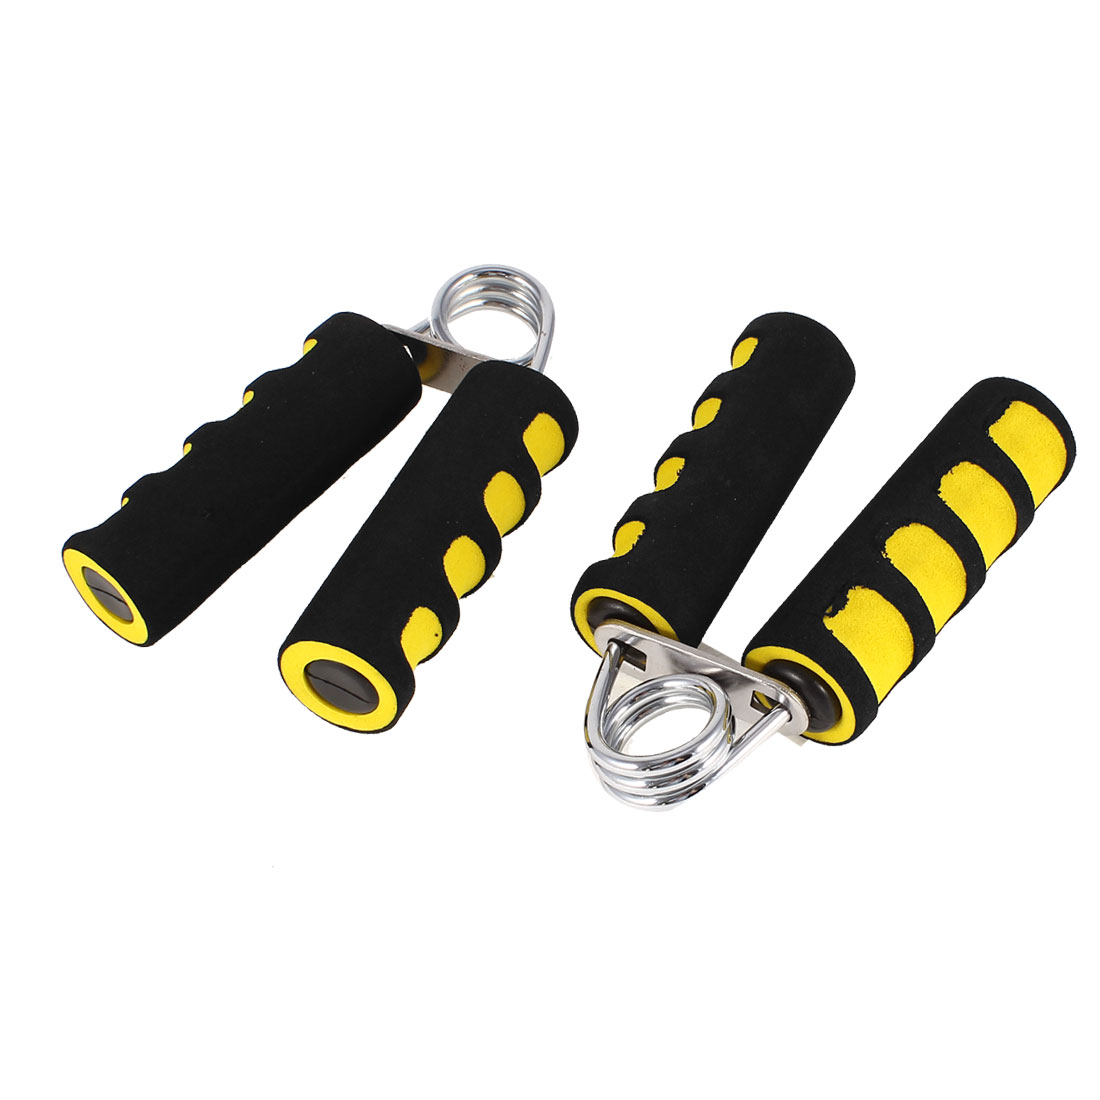 Fitness Exercise Hand Grippers Wrist Arm Strength Yellow Black 2pcs